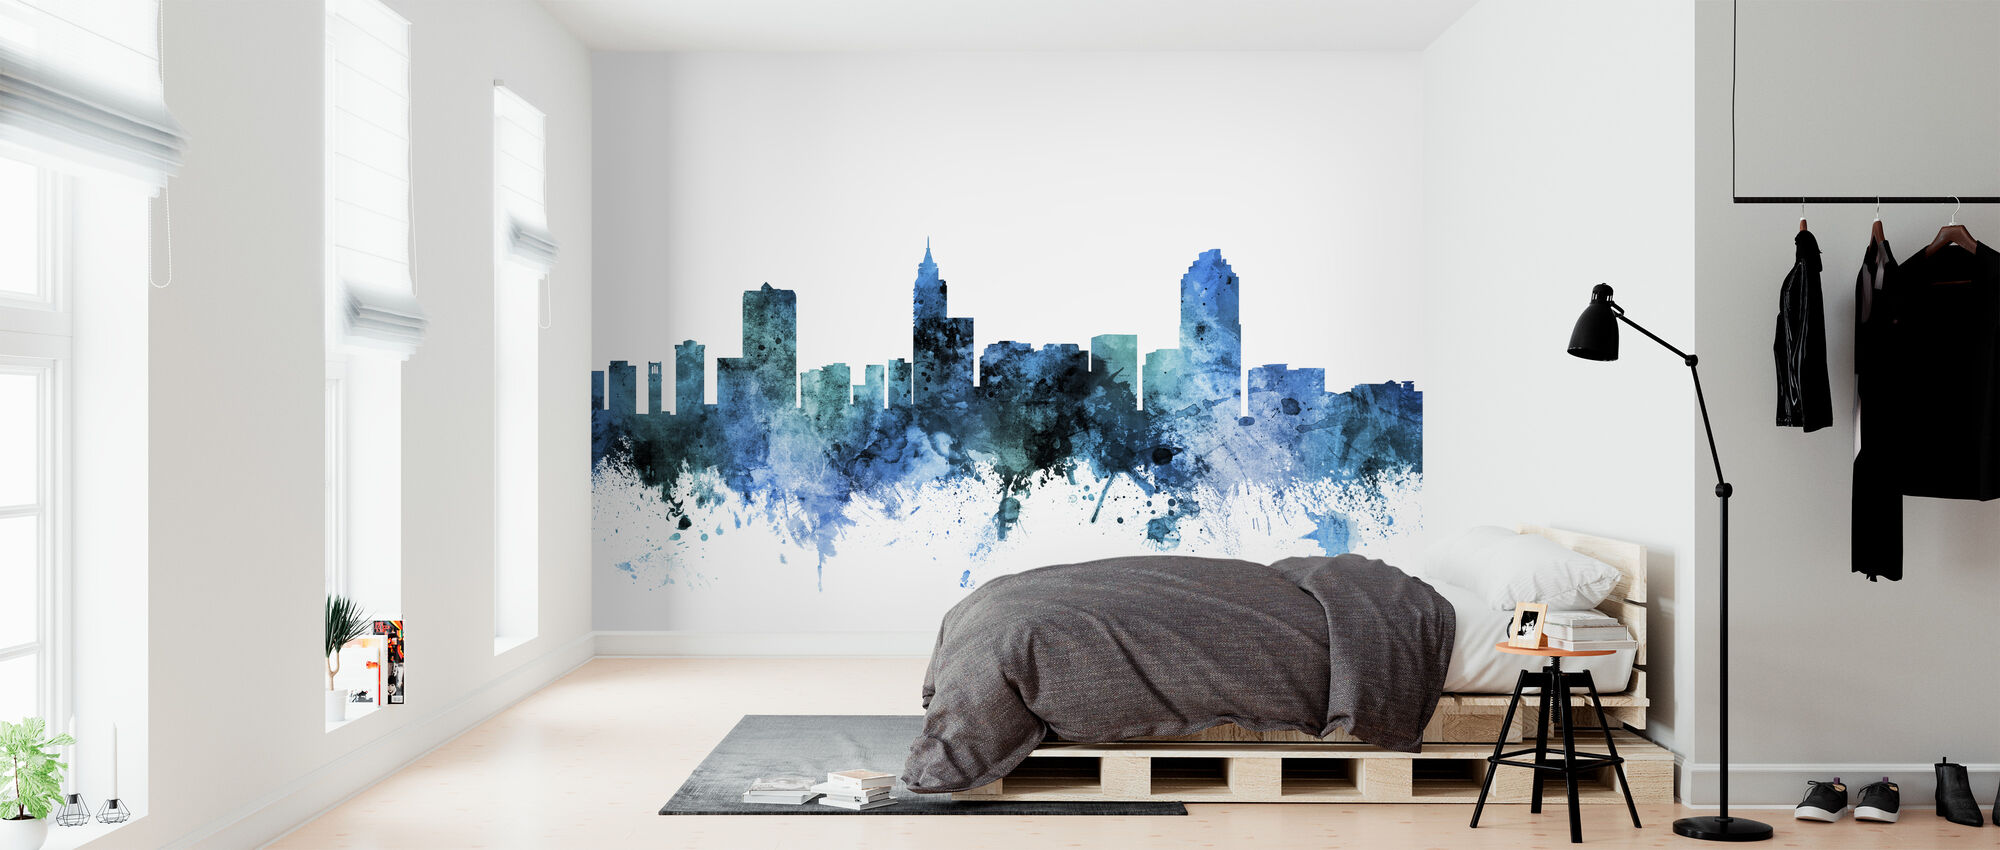 Skyline van Raleigh North Carolina - Behang - Slaapkamer